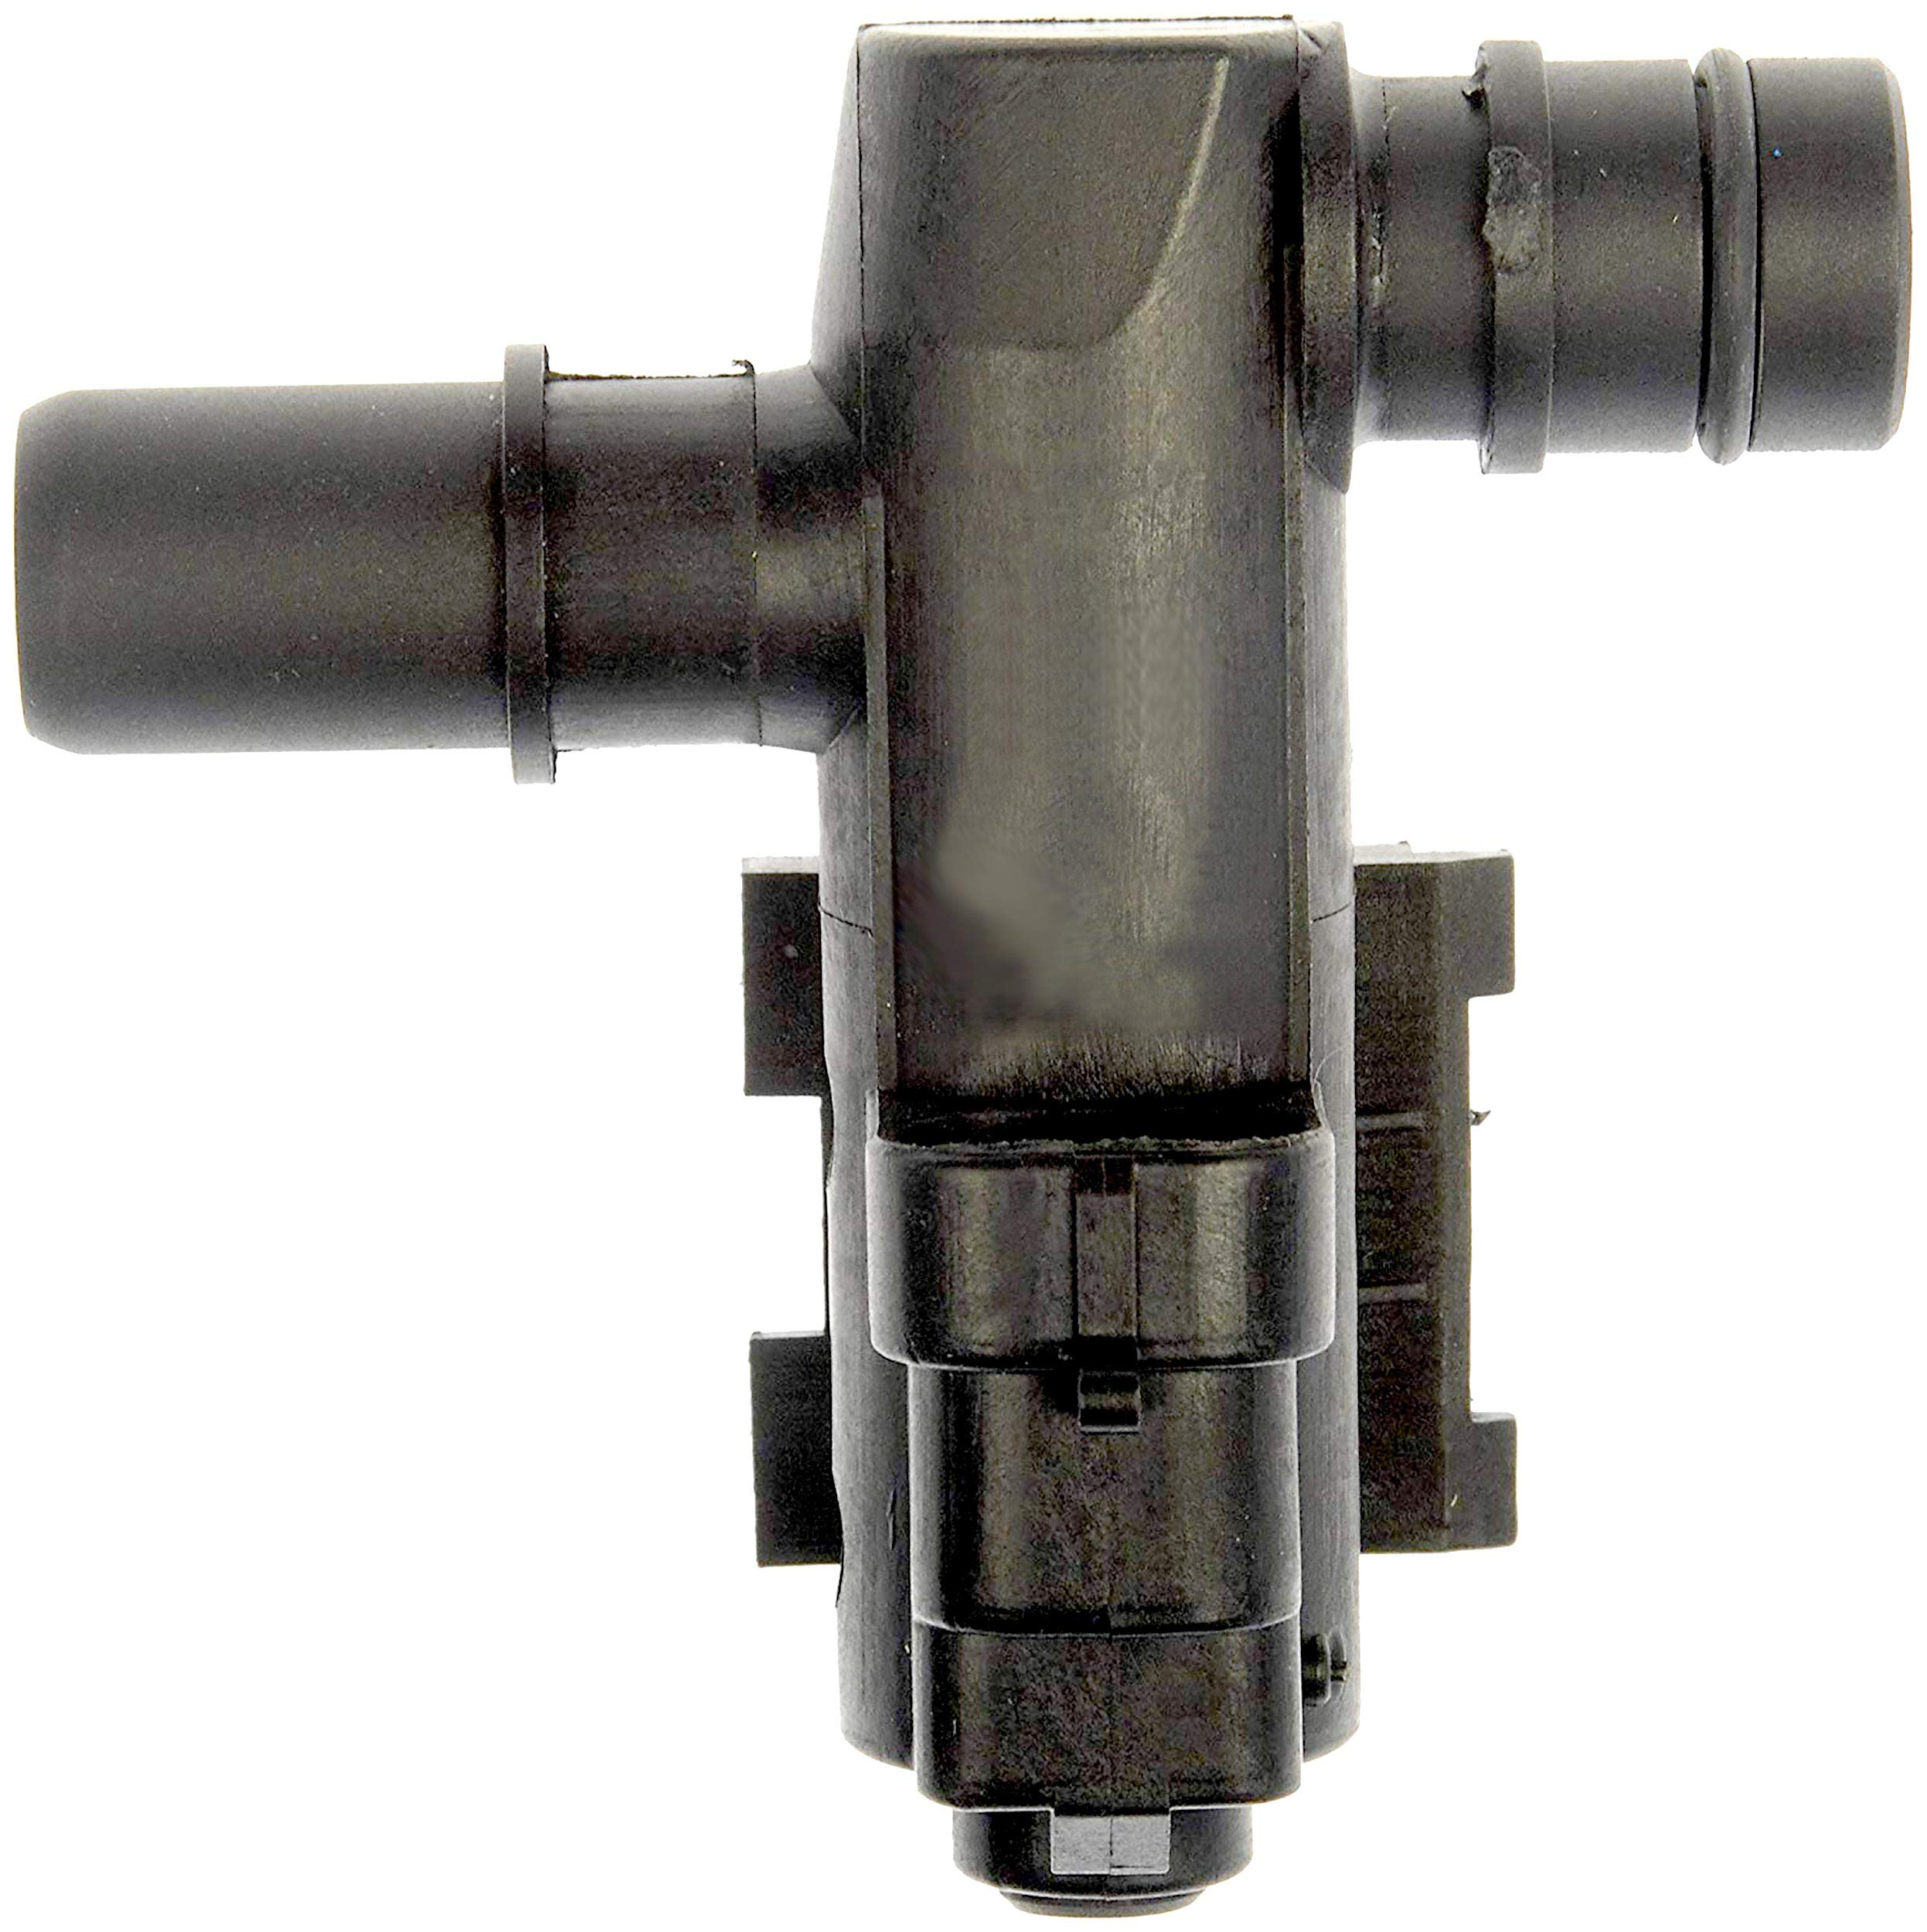 APDTY 022132 Vapor Canister Purge Vent Valve Solenoid Fits Cadillac, Chevy, GMC, Hummer Vehicles; View Compatibility Chart For Your Specific Model (Replaces 25932571) by APDTY (Image #1)